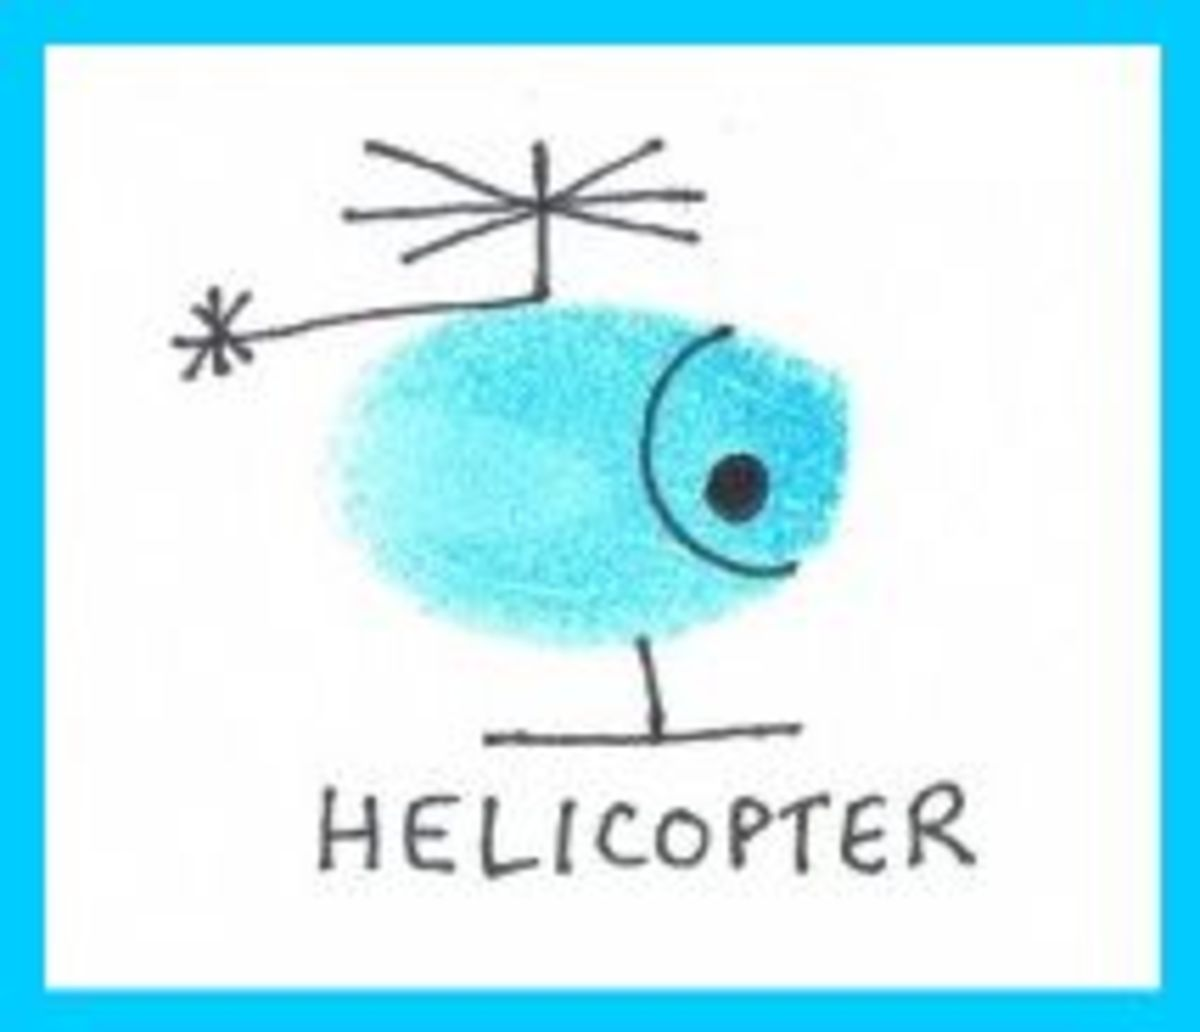 helicopter art